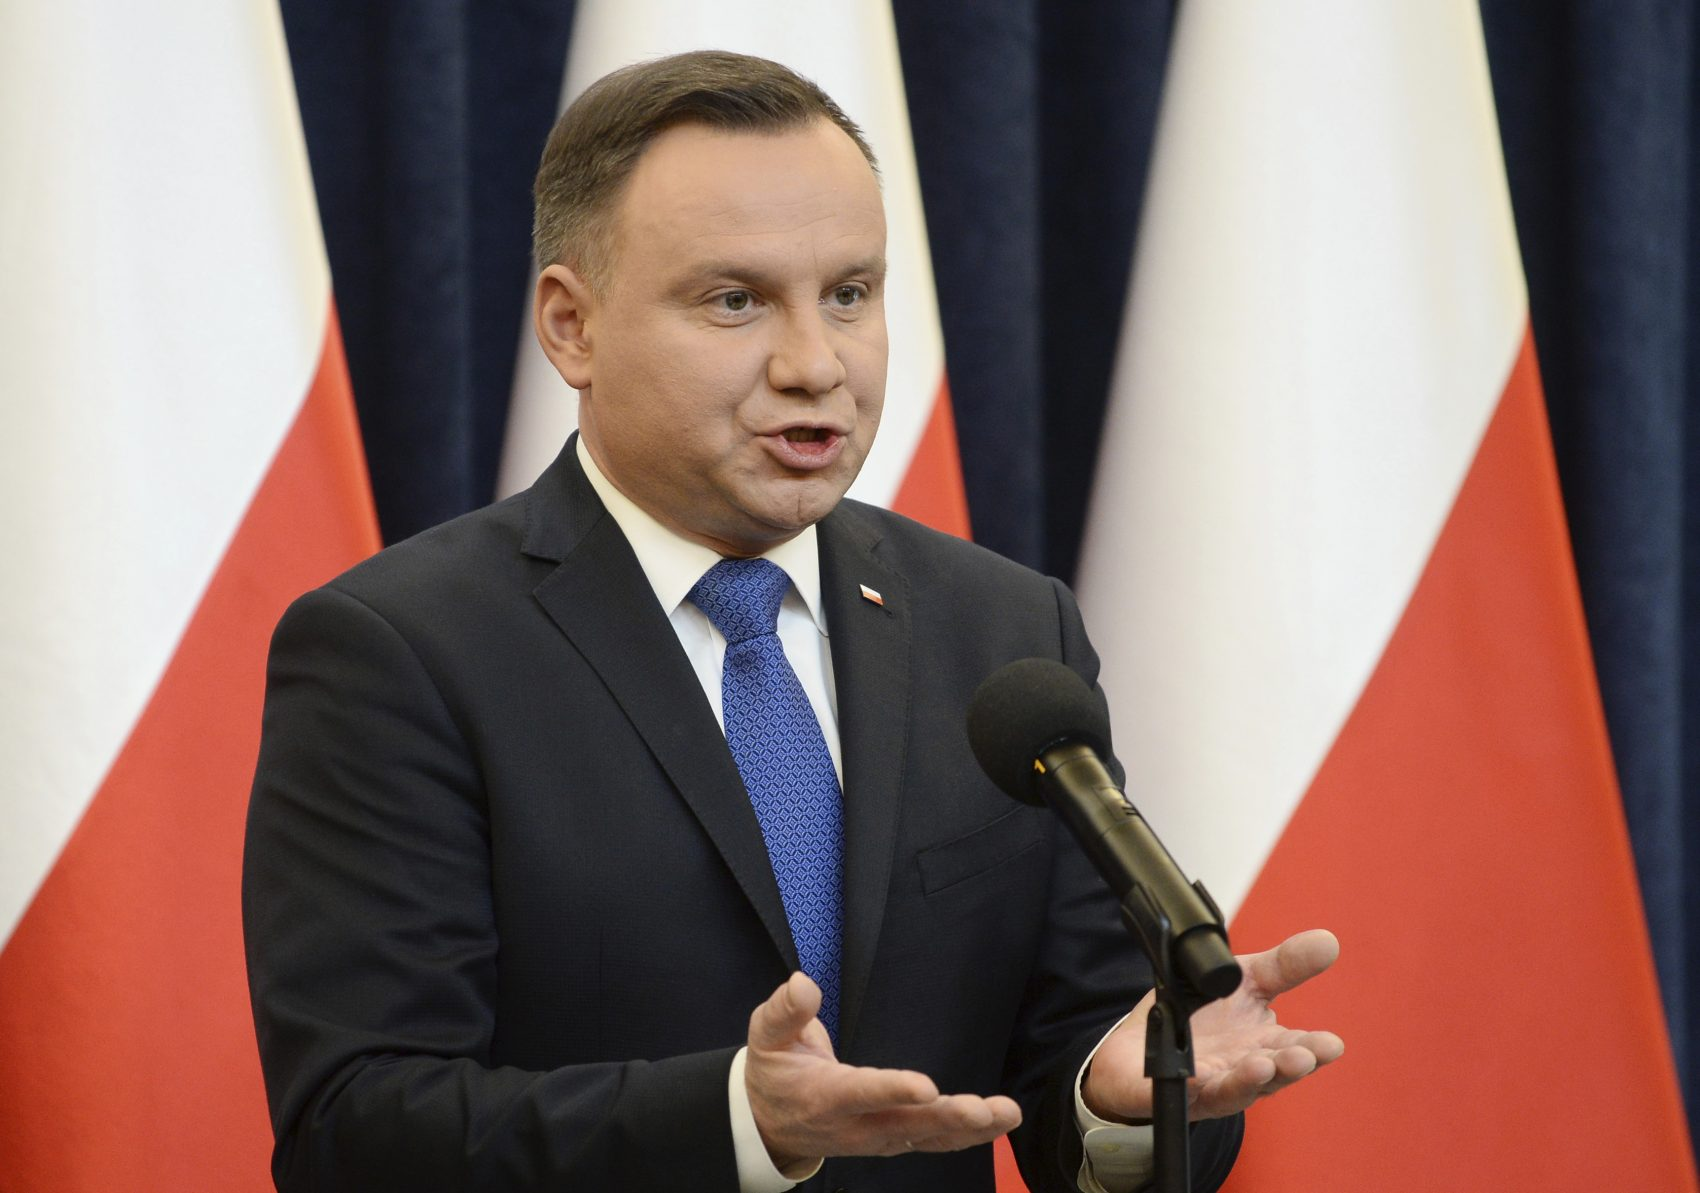 Polish President Andrzej Duda announces his decision to sign legislation penalizing certain statements about the Holocaust, in Warsaw, Poland, Tuesday, Feb. 6, 2018. Duda said that he will also ask the constitutional court to make final ruling on the disputed Holocaust speech bill. (Alik Keplicz/AP)